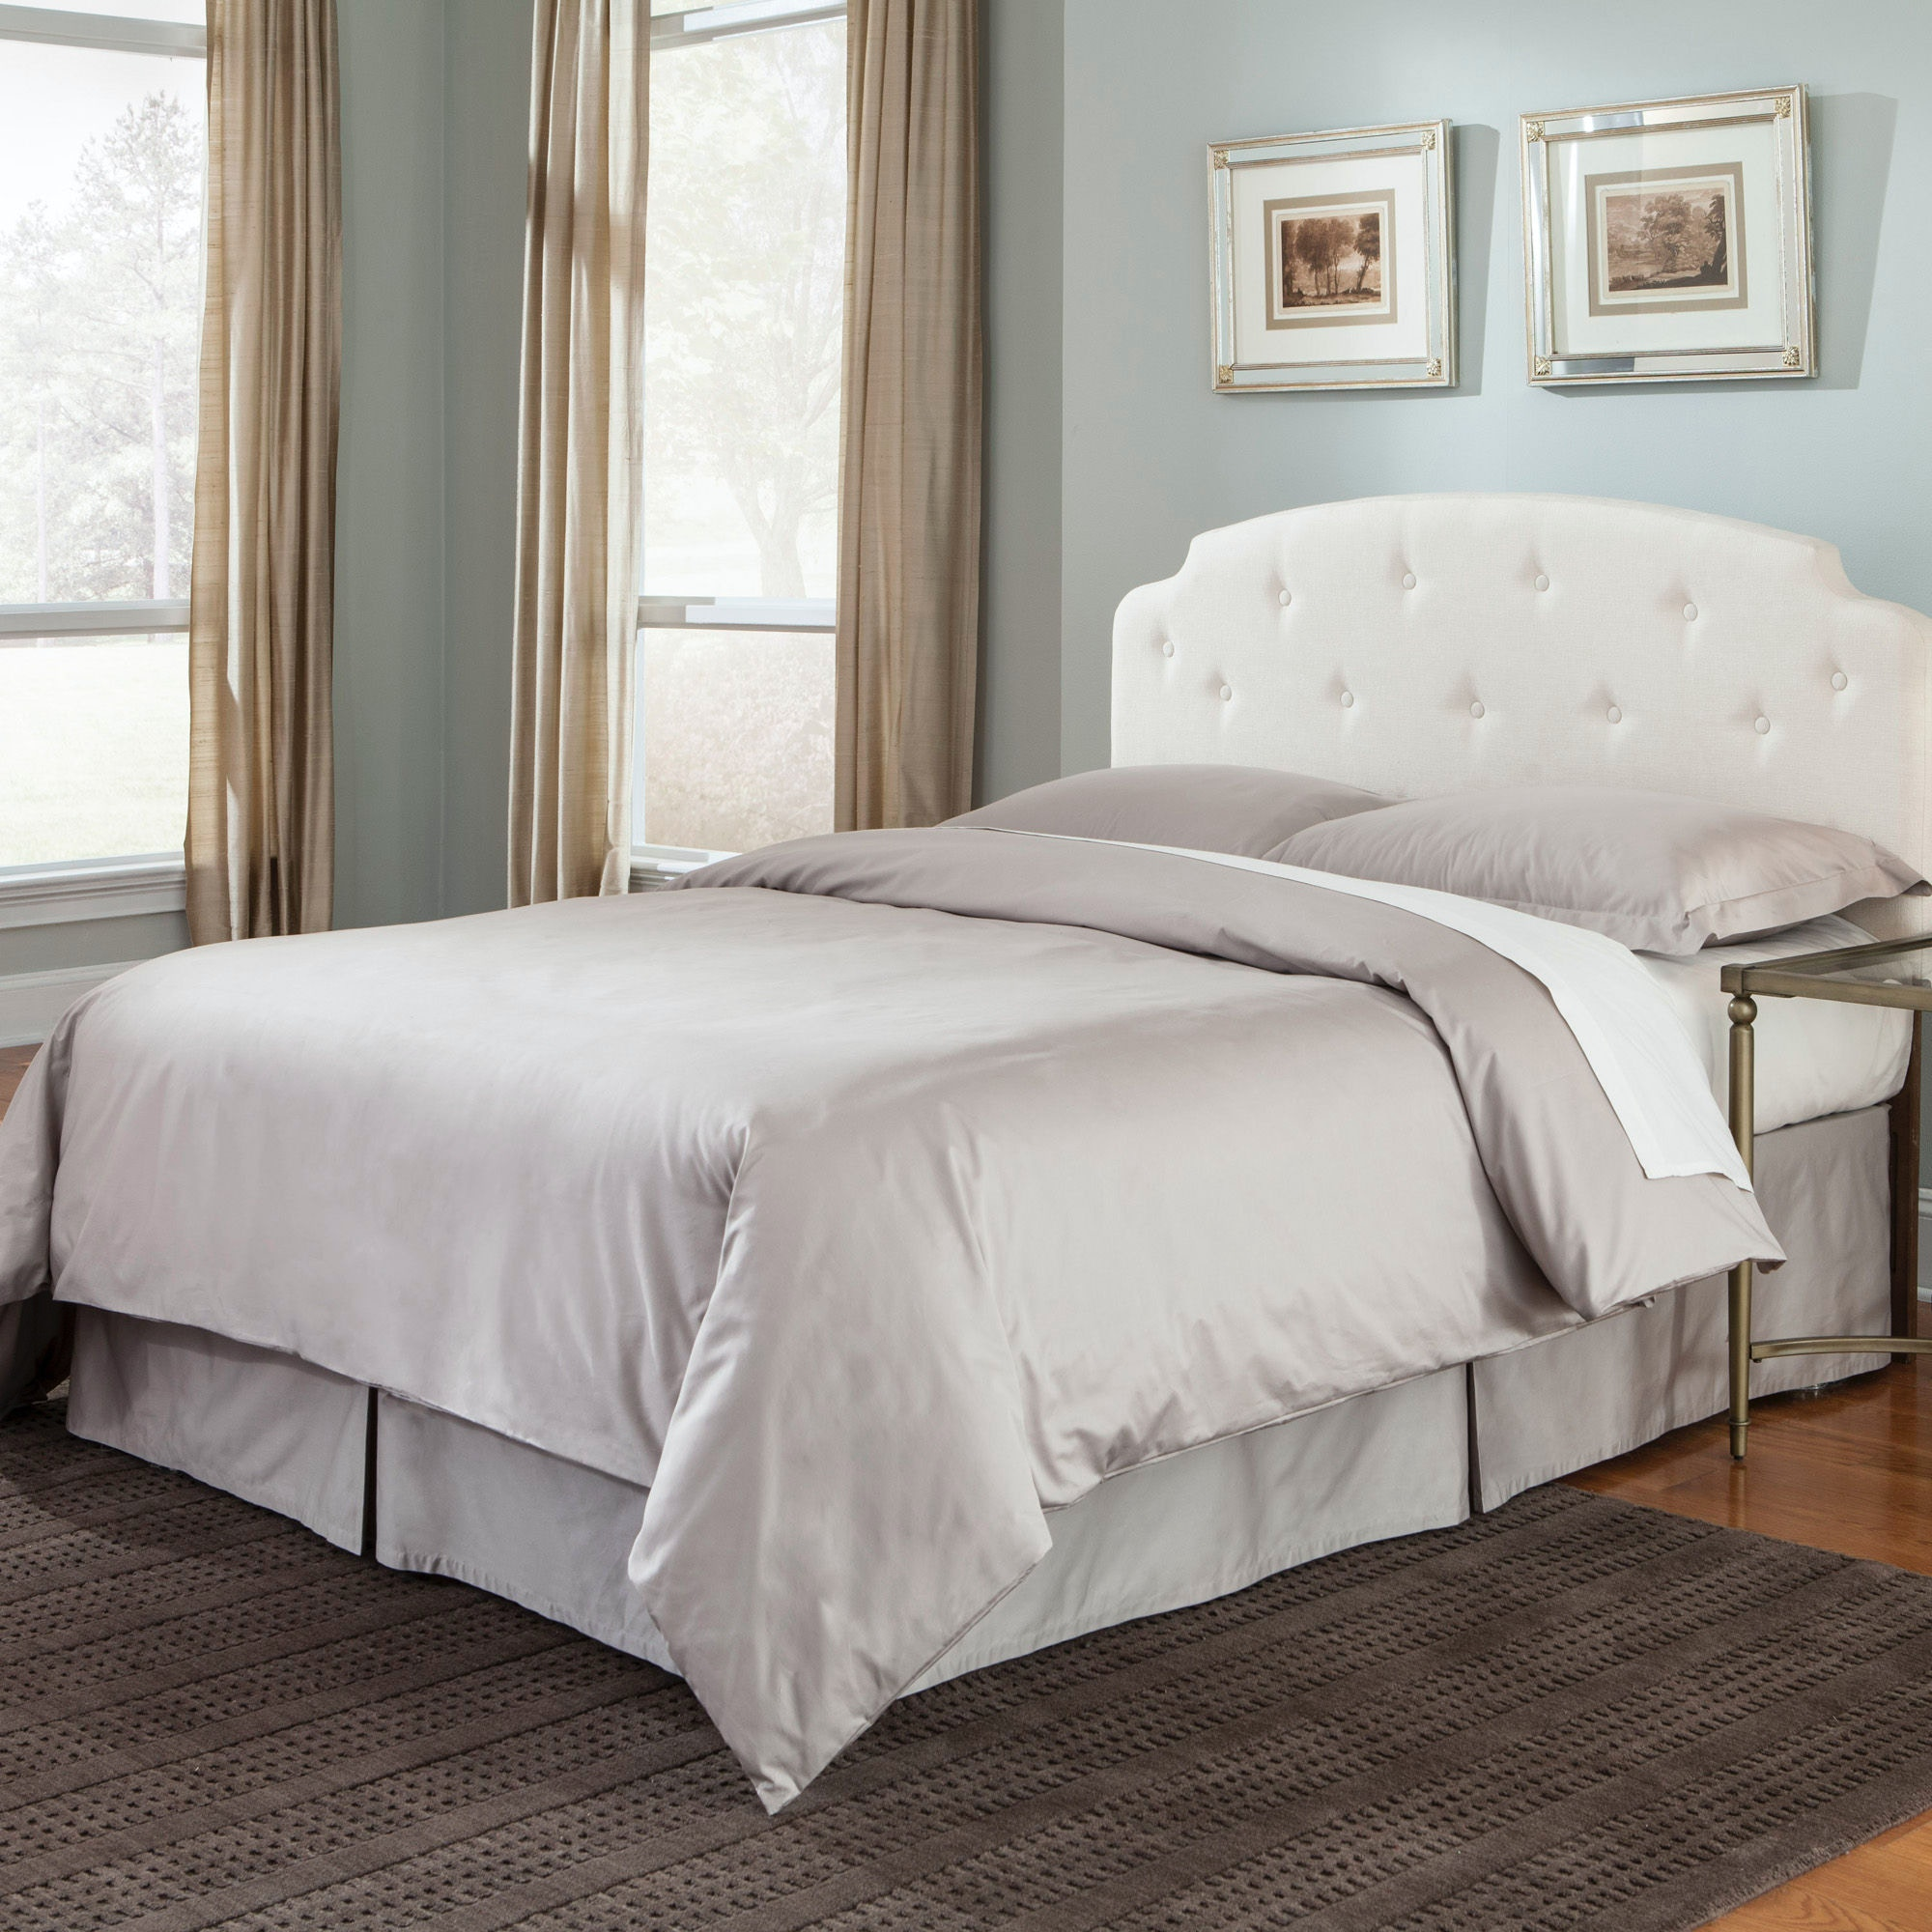 Fashion Bed Group QA0099 Sand Finished Bed Skirt, Queen